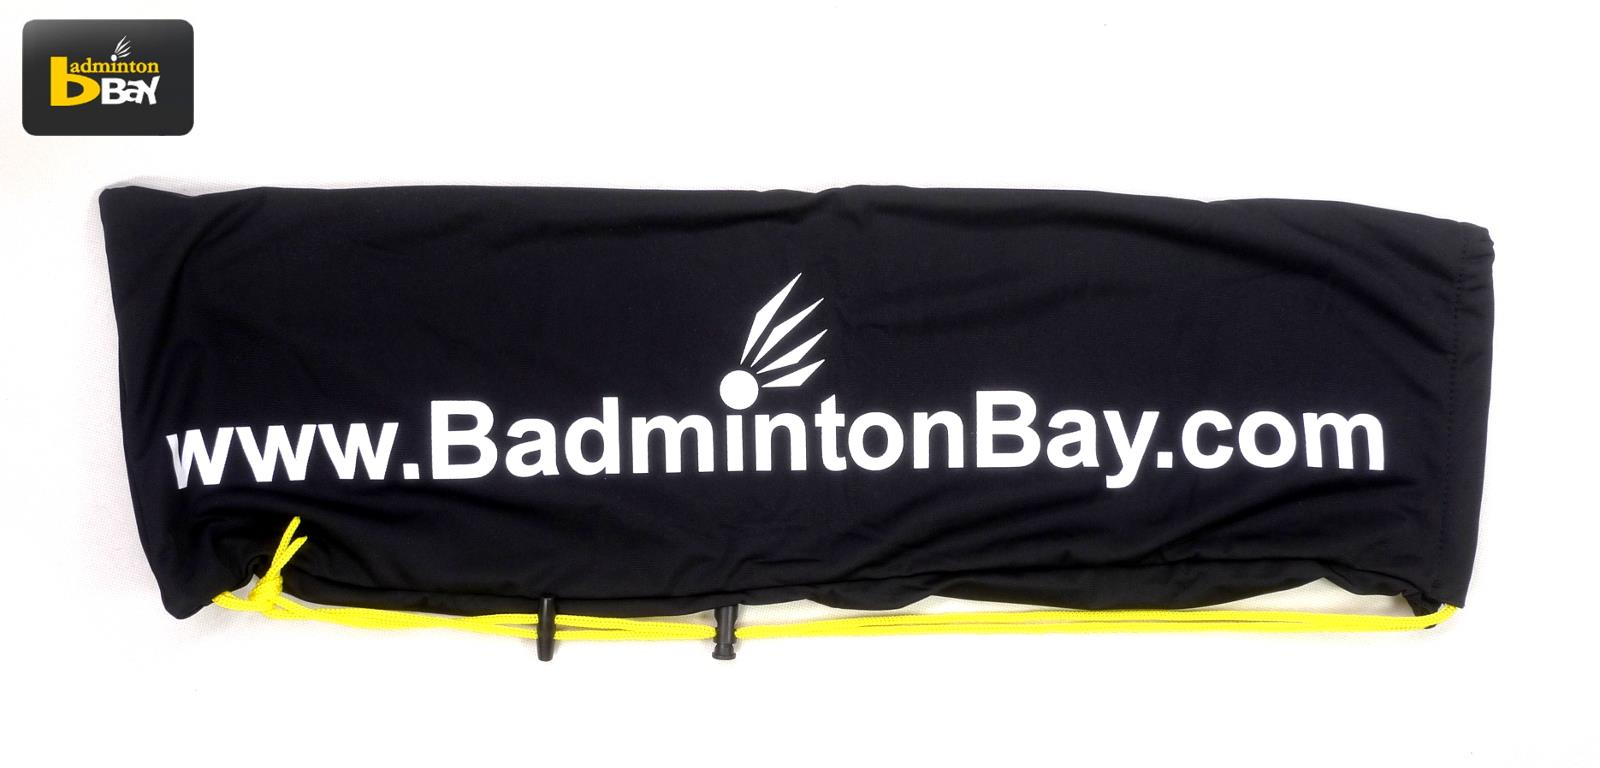 NEW Badminton Bay Soft Cloth Velvet Racket Cover Protection